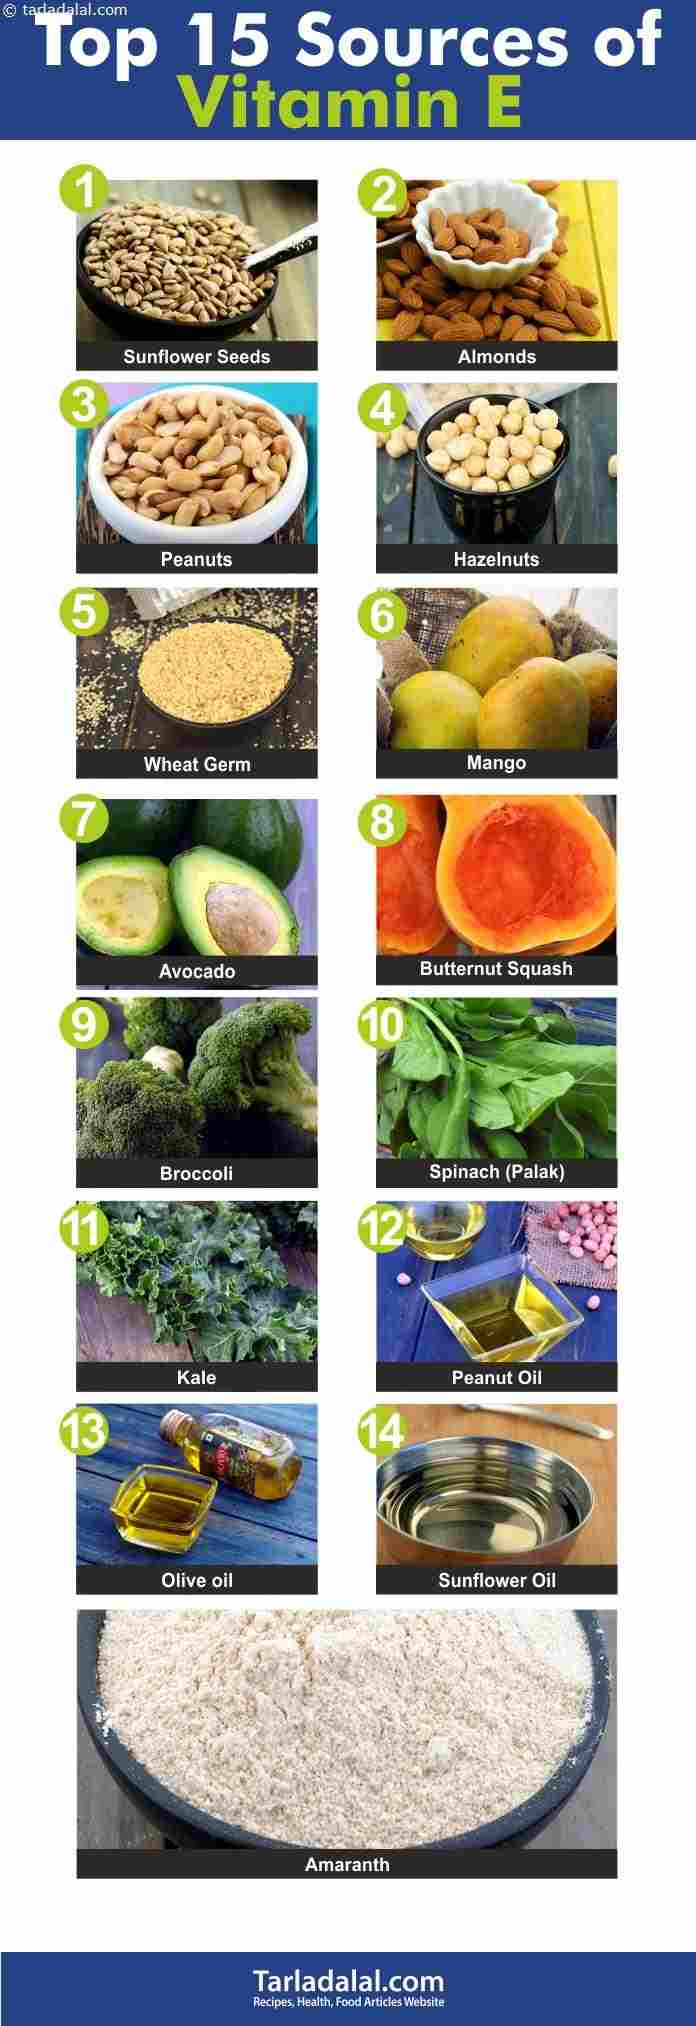 Increase Your Vitamin E With These Healthy Recipes 6 Top Functions Of Vitamin E